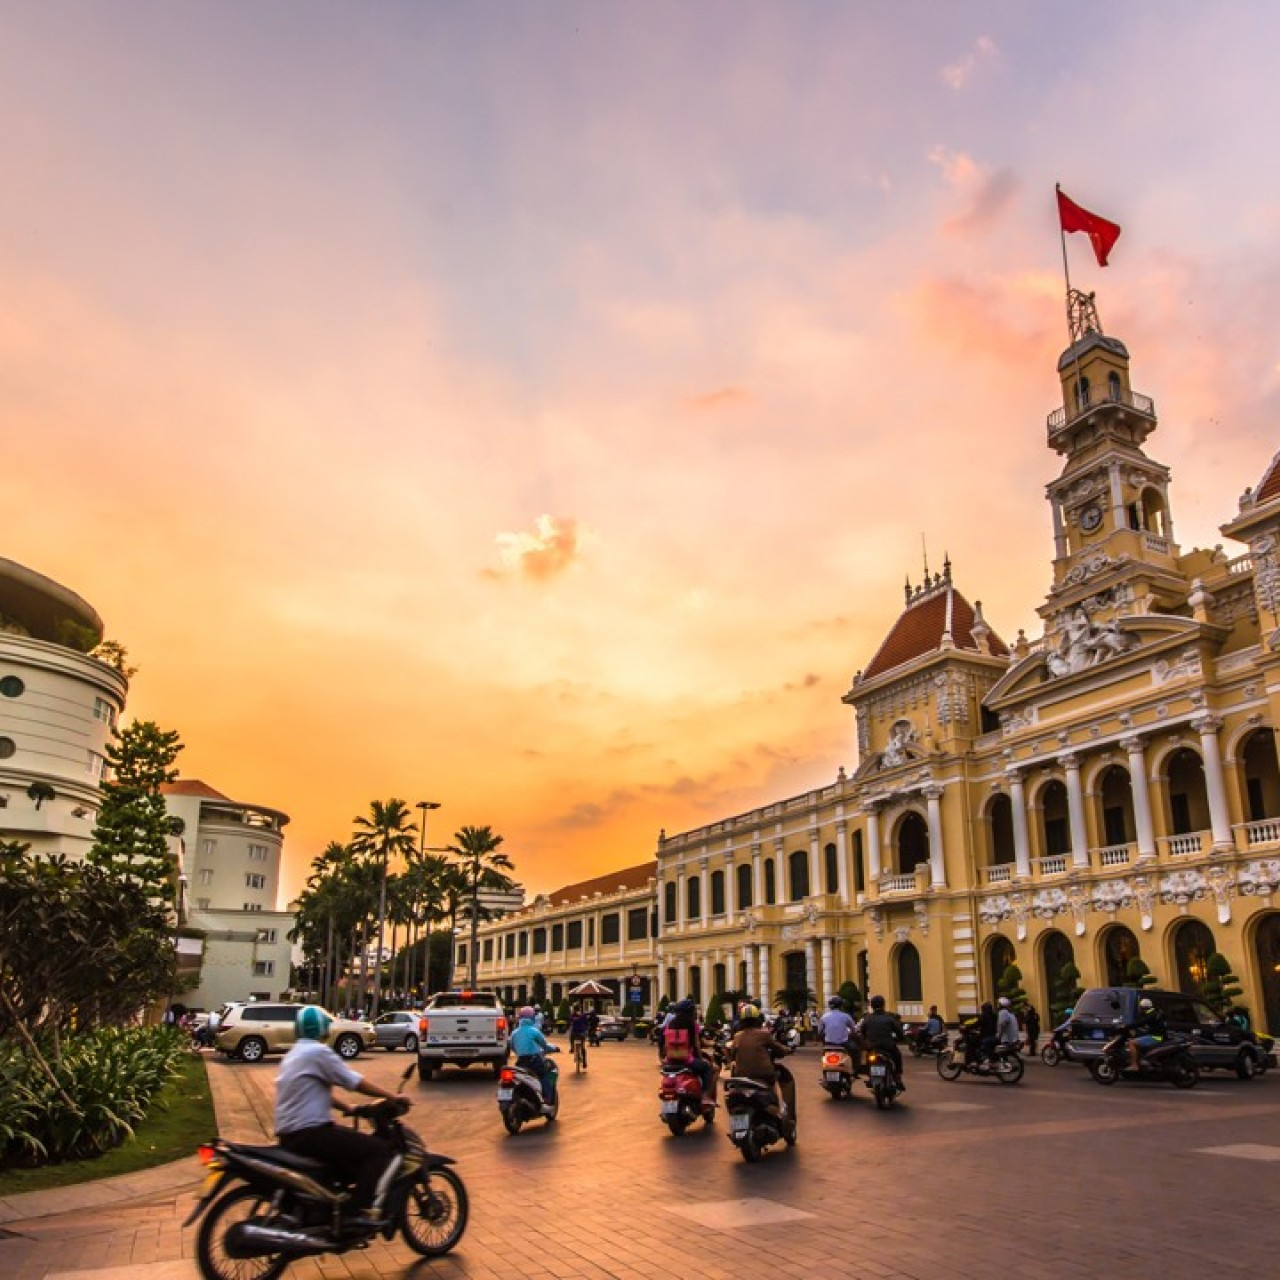 Vietnam wants Chinese tourists, but only those willing to